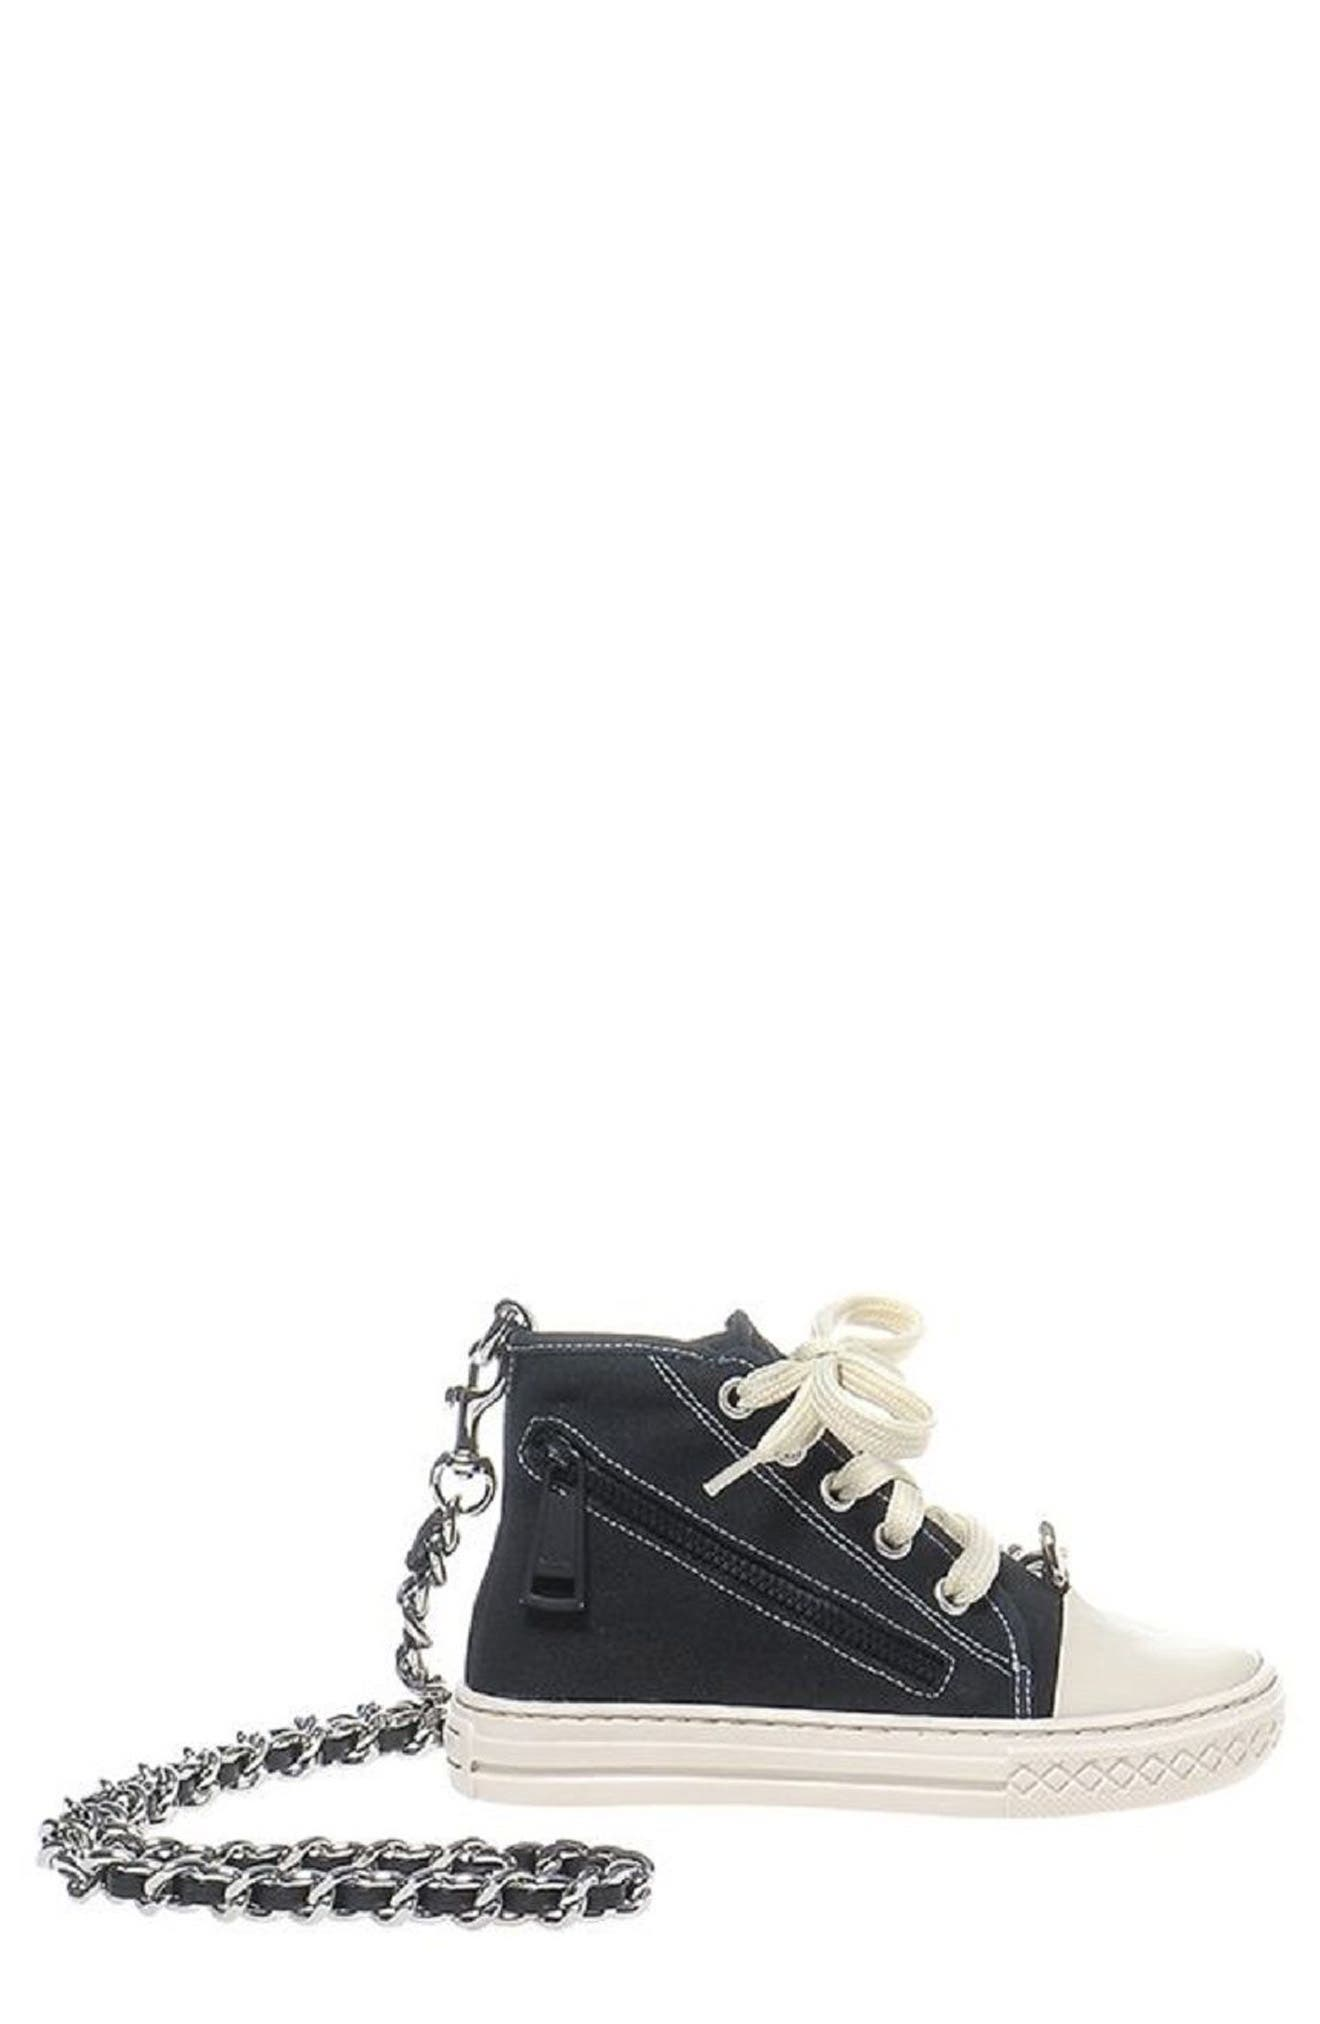 Moschino Sneaker Shoulder Bag